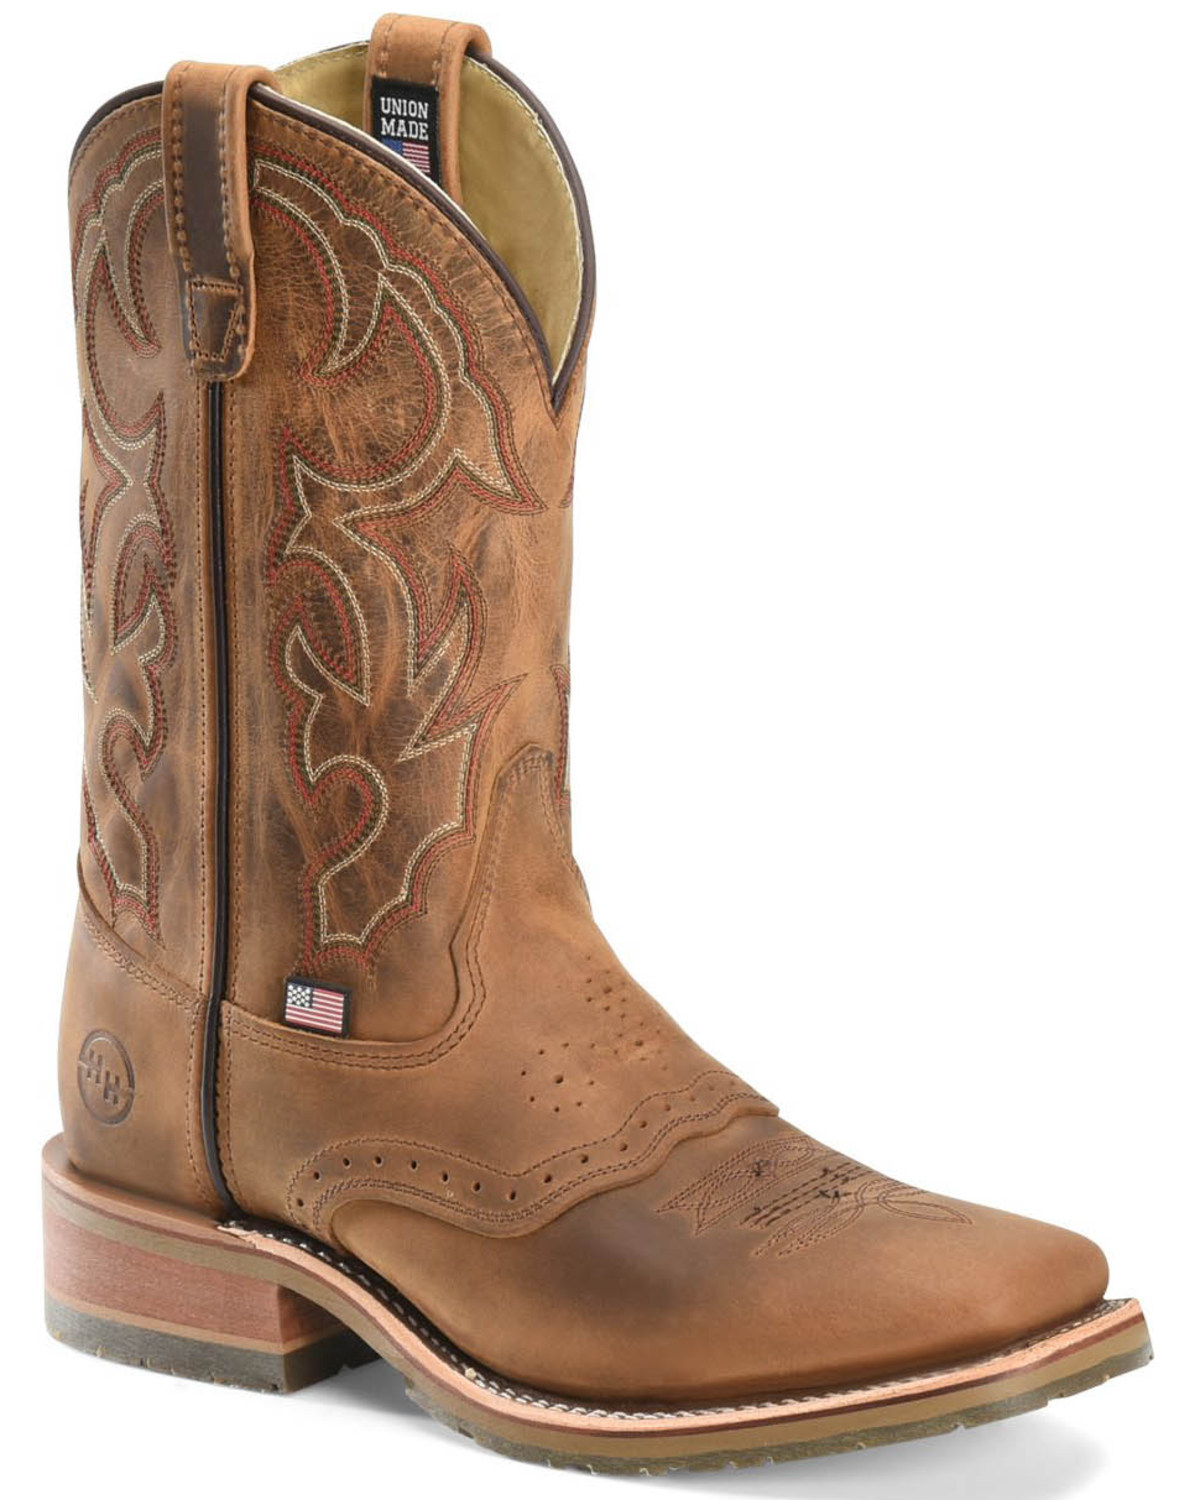 Browse For Boots Unisex Bright S24303784